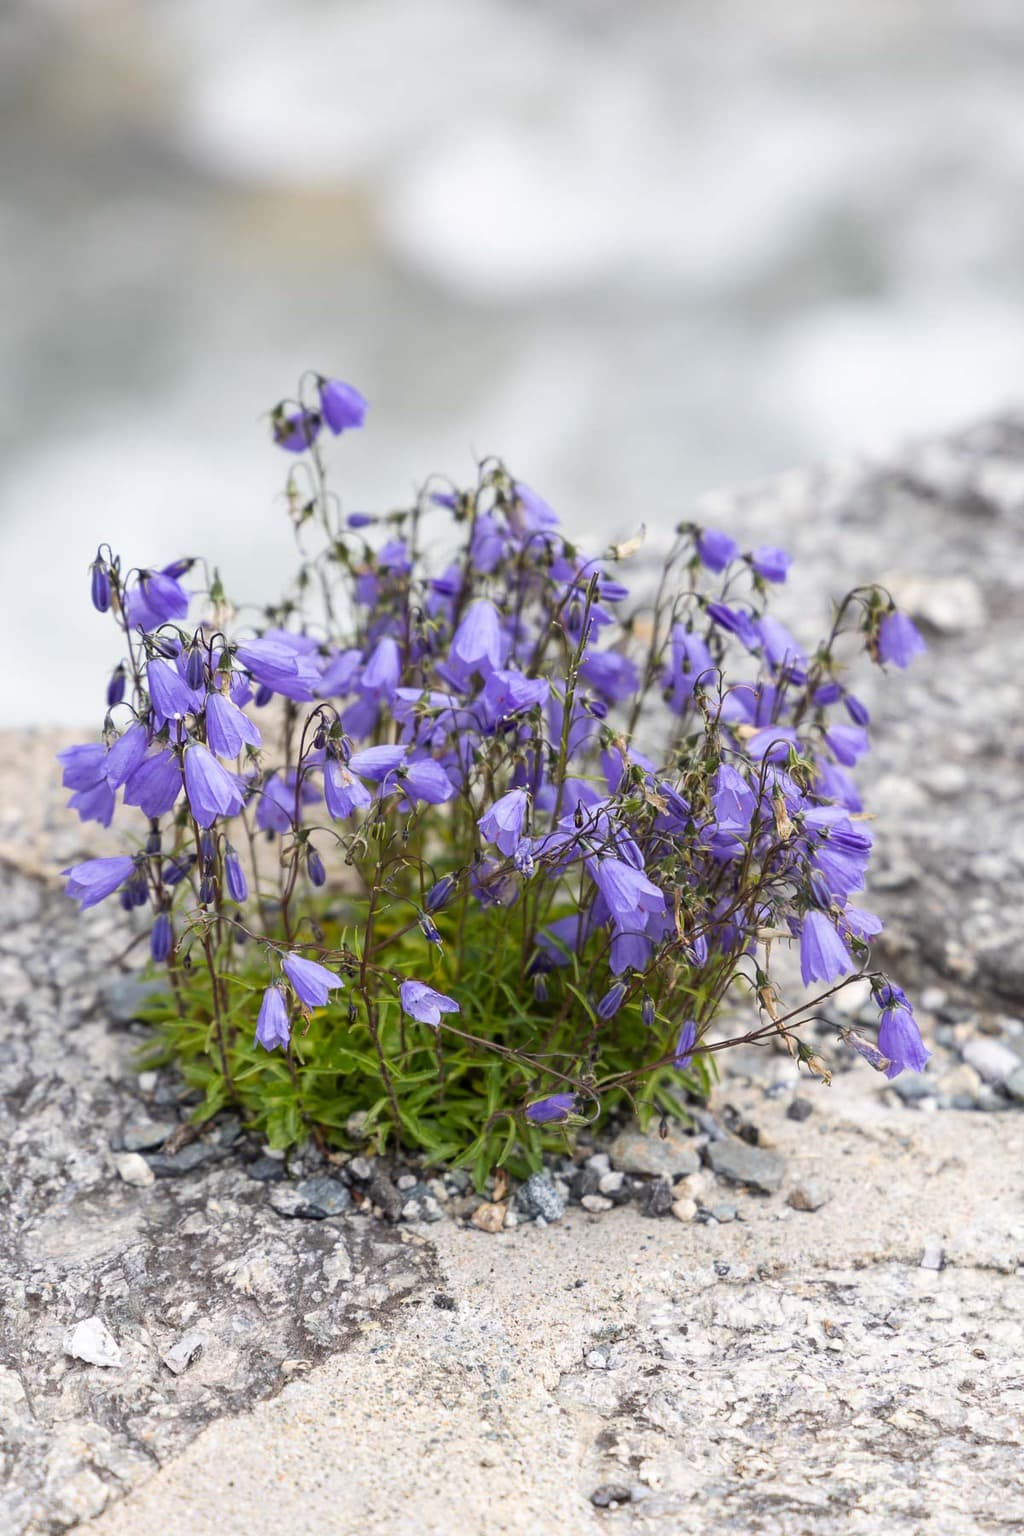 Vertical closeup photo of purple flowers growing out of a rock wall in Argentiére, France.